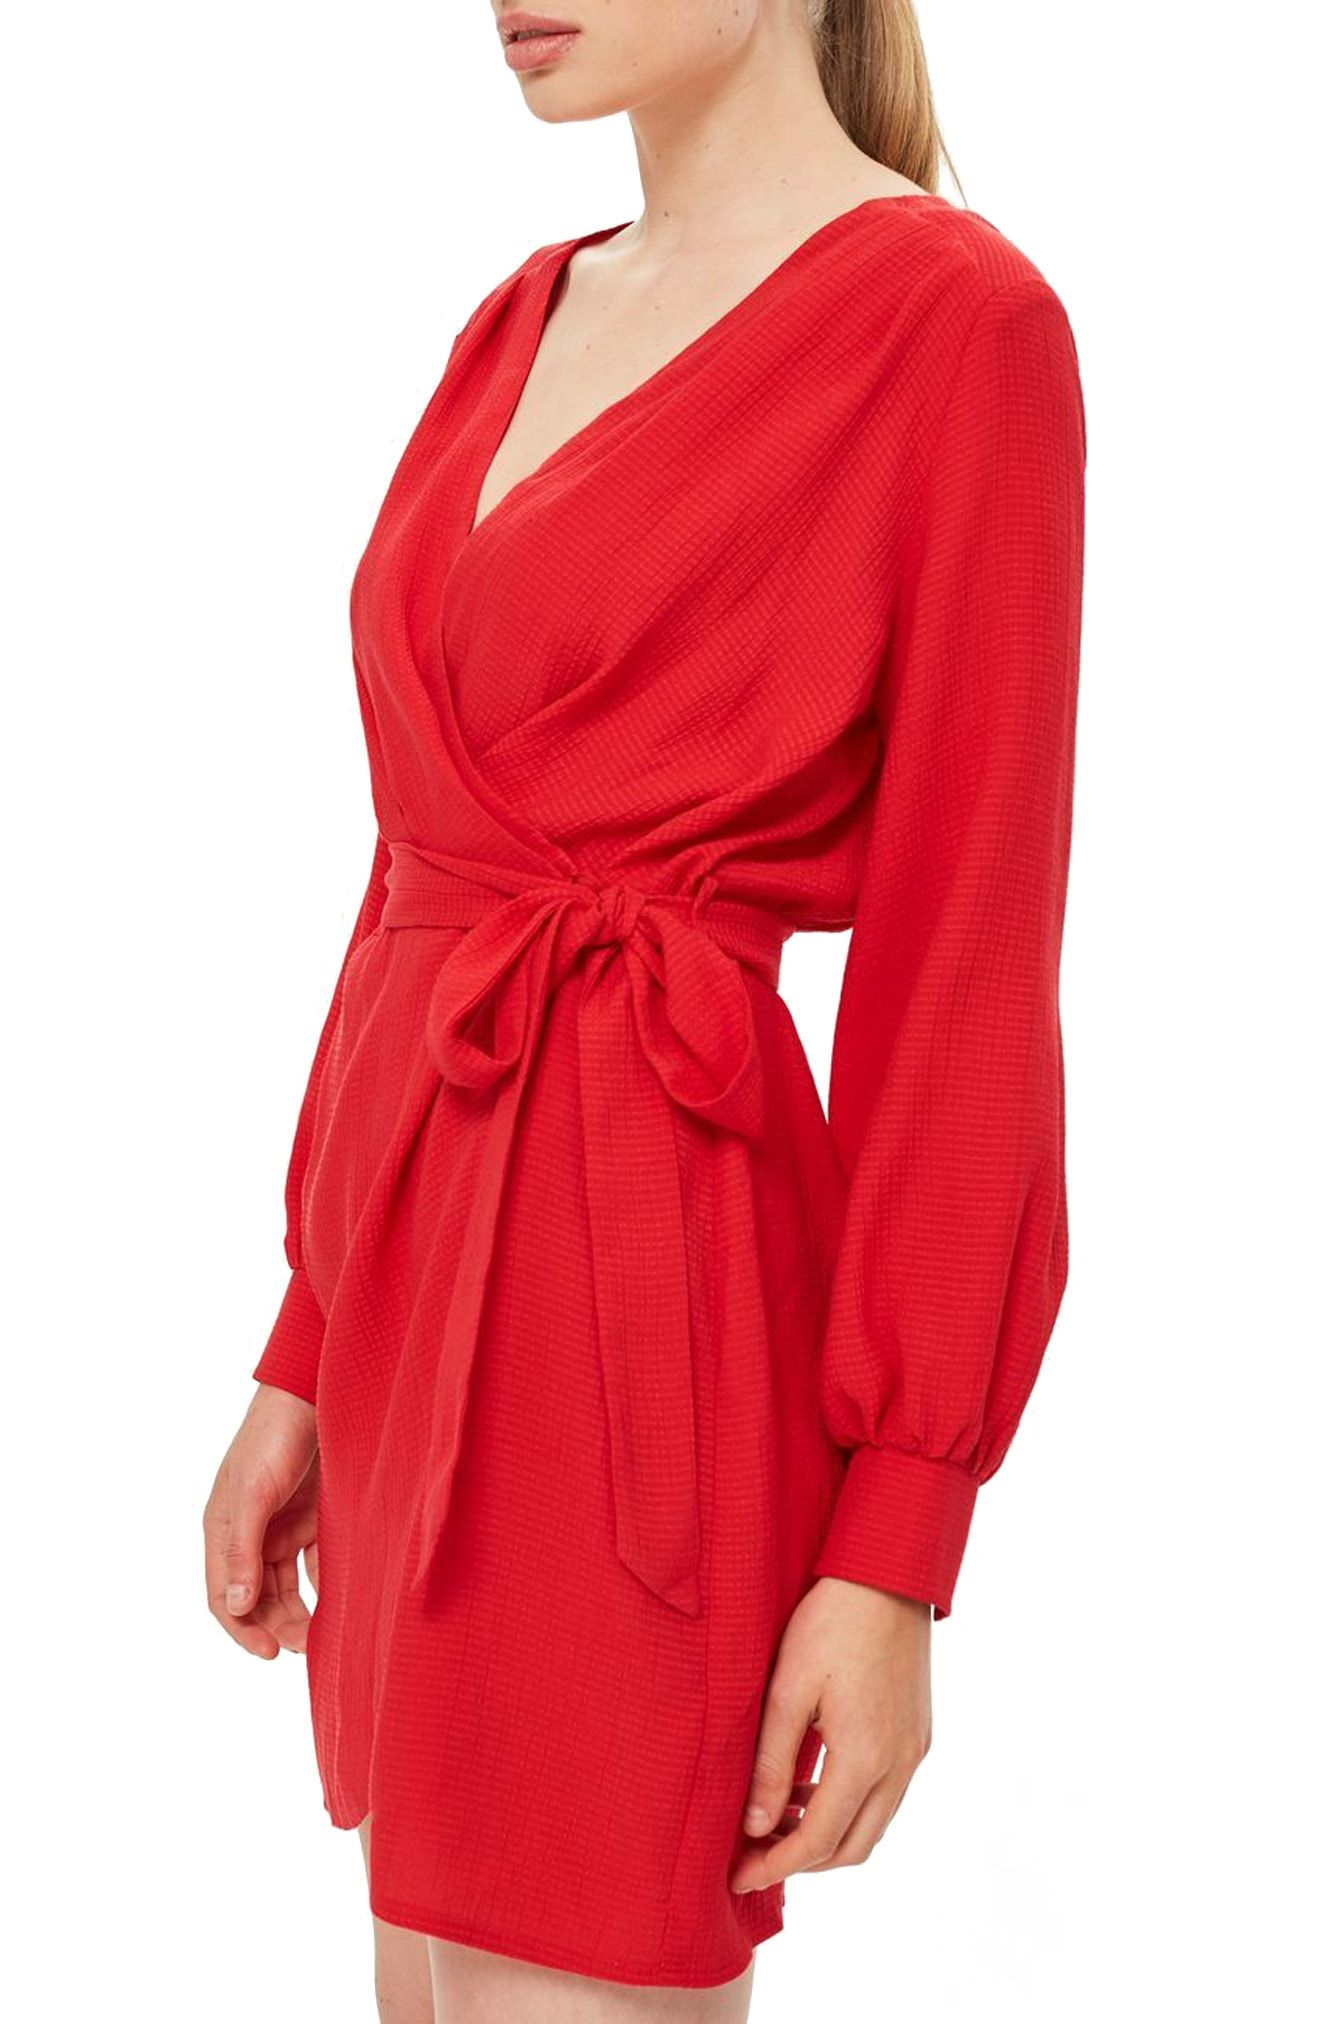 b3485340d8 It looks like wrap dresses are sticking around! I love this red wrap dress  from Topshop! It is such a feminine style and that red is so eye catching!